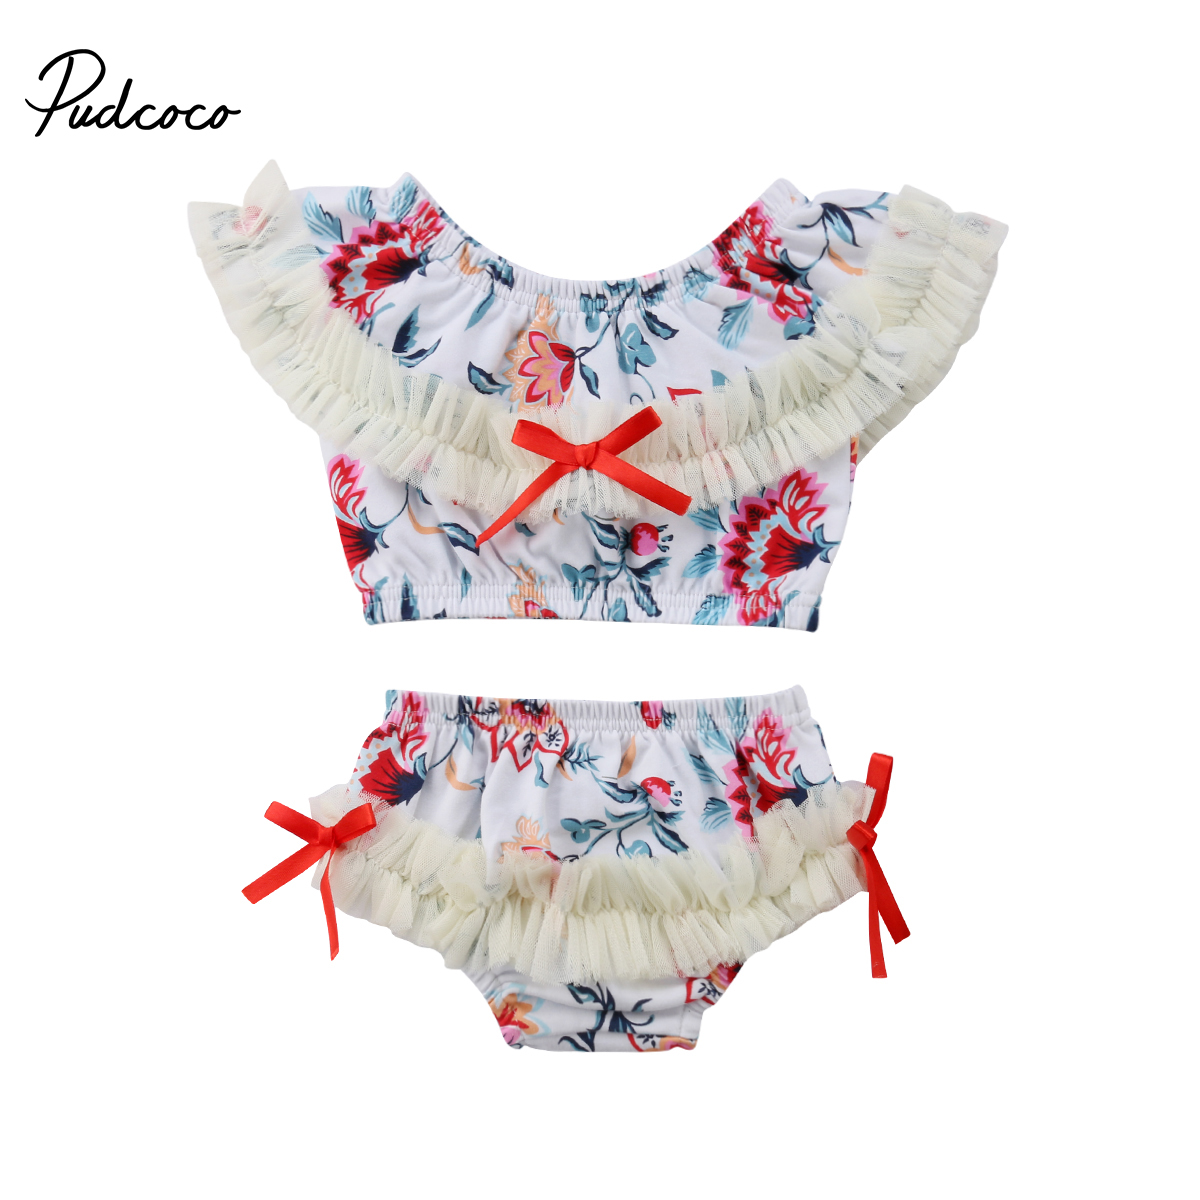 Toddler Girl Braces Ruffle Crop Top Hawaii Floral Short Pant 2Pcs Outfit Sets for Baby Kid Child 1-7T